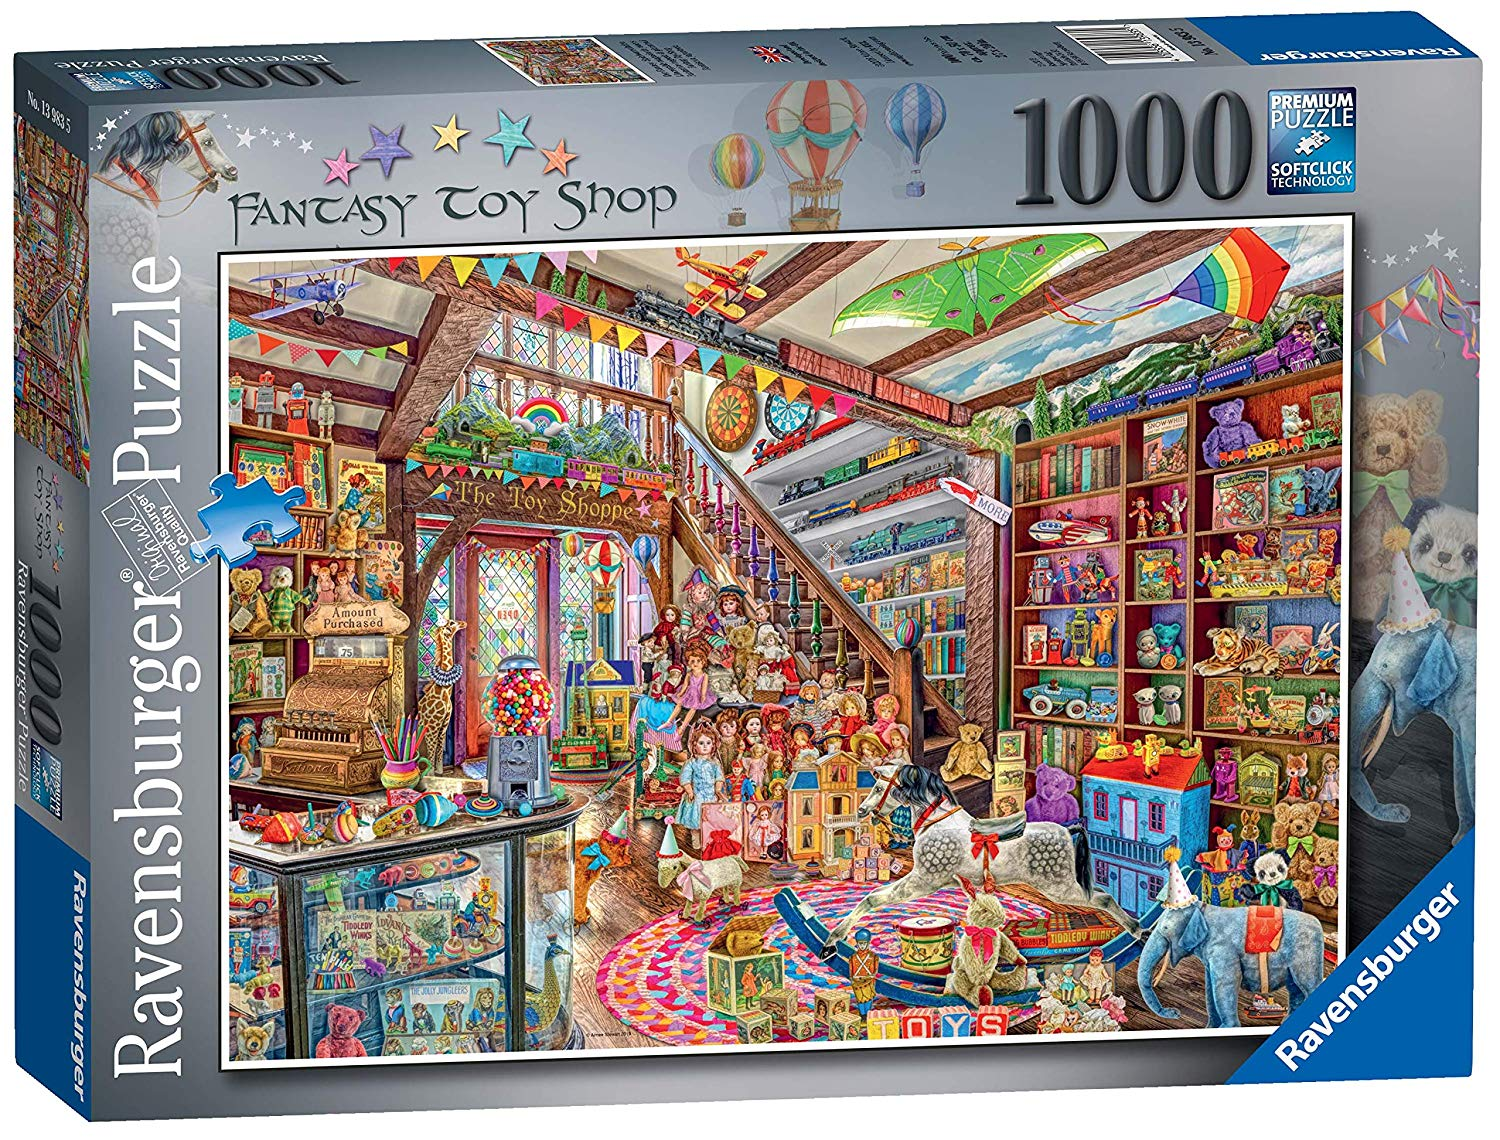 The Fantasy Toy Shop 1000pc Jigsaw Puzzle